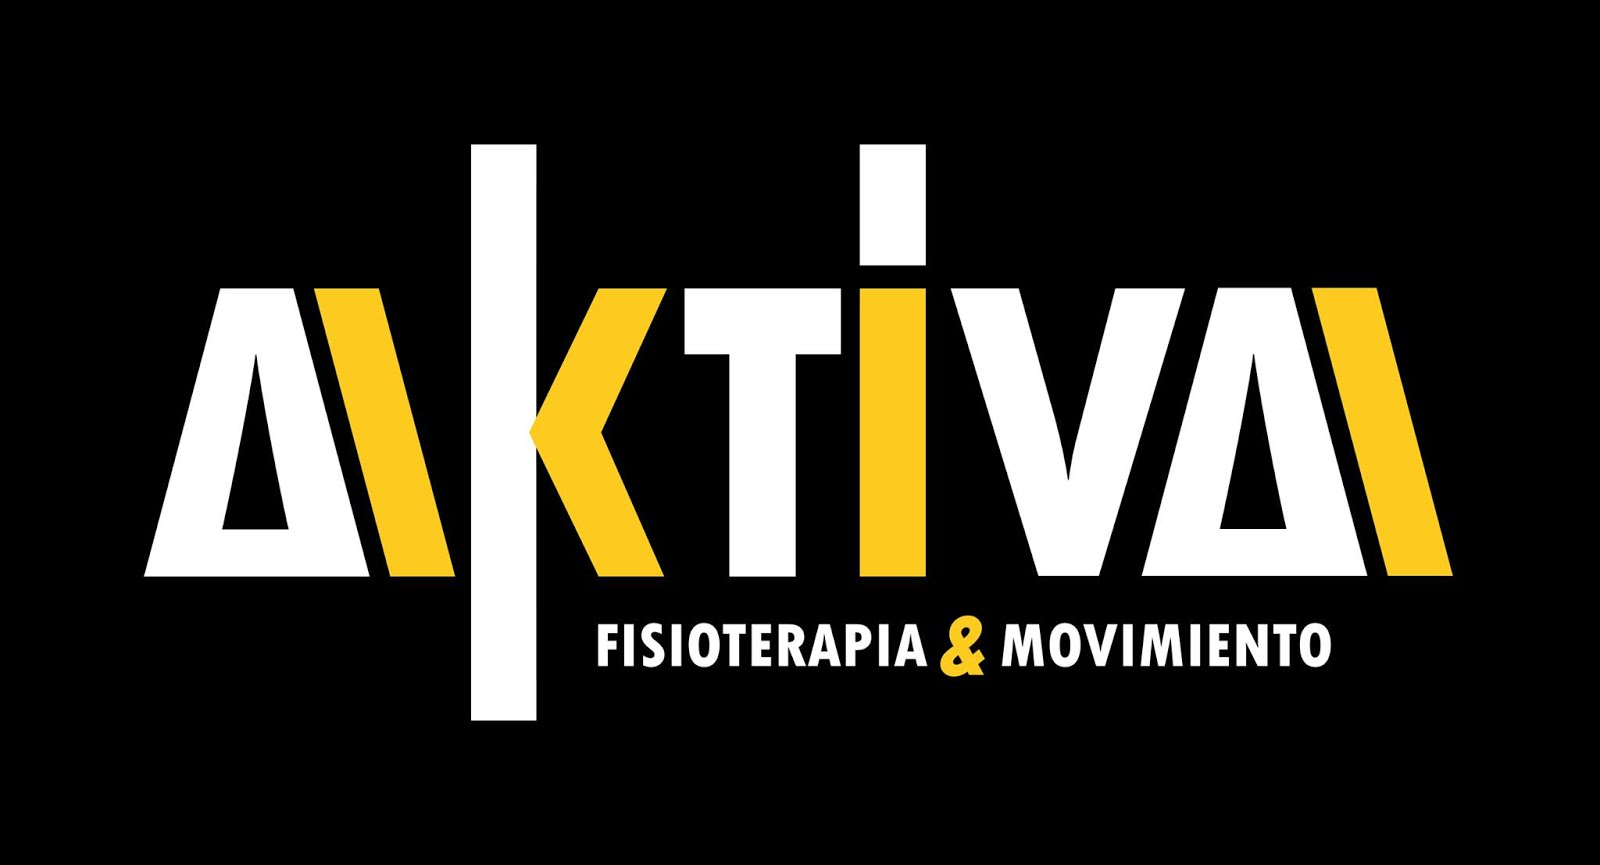 COLABORADOR AKTIVA. FISIOTERAPIA Y MOVIMIENTO